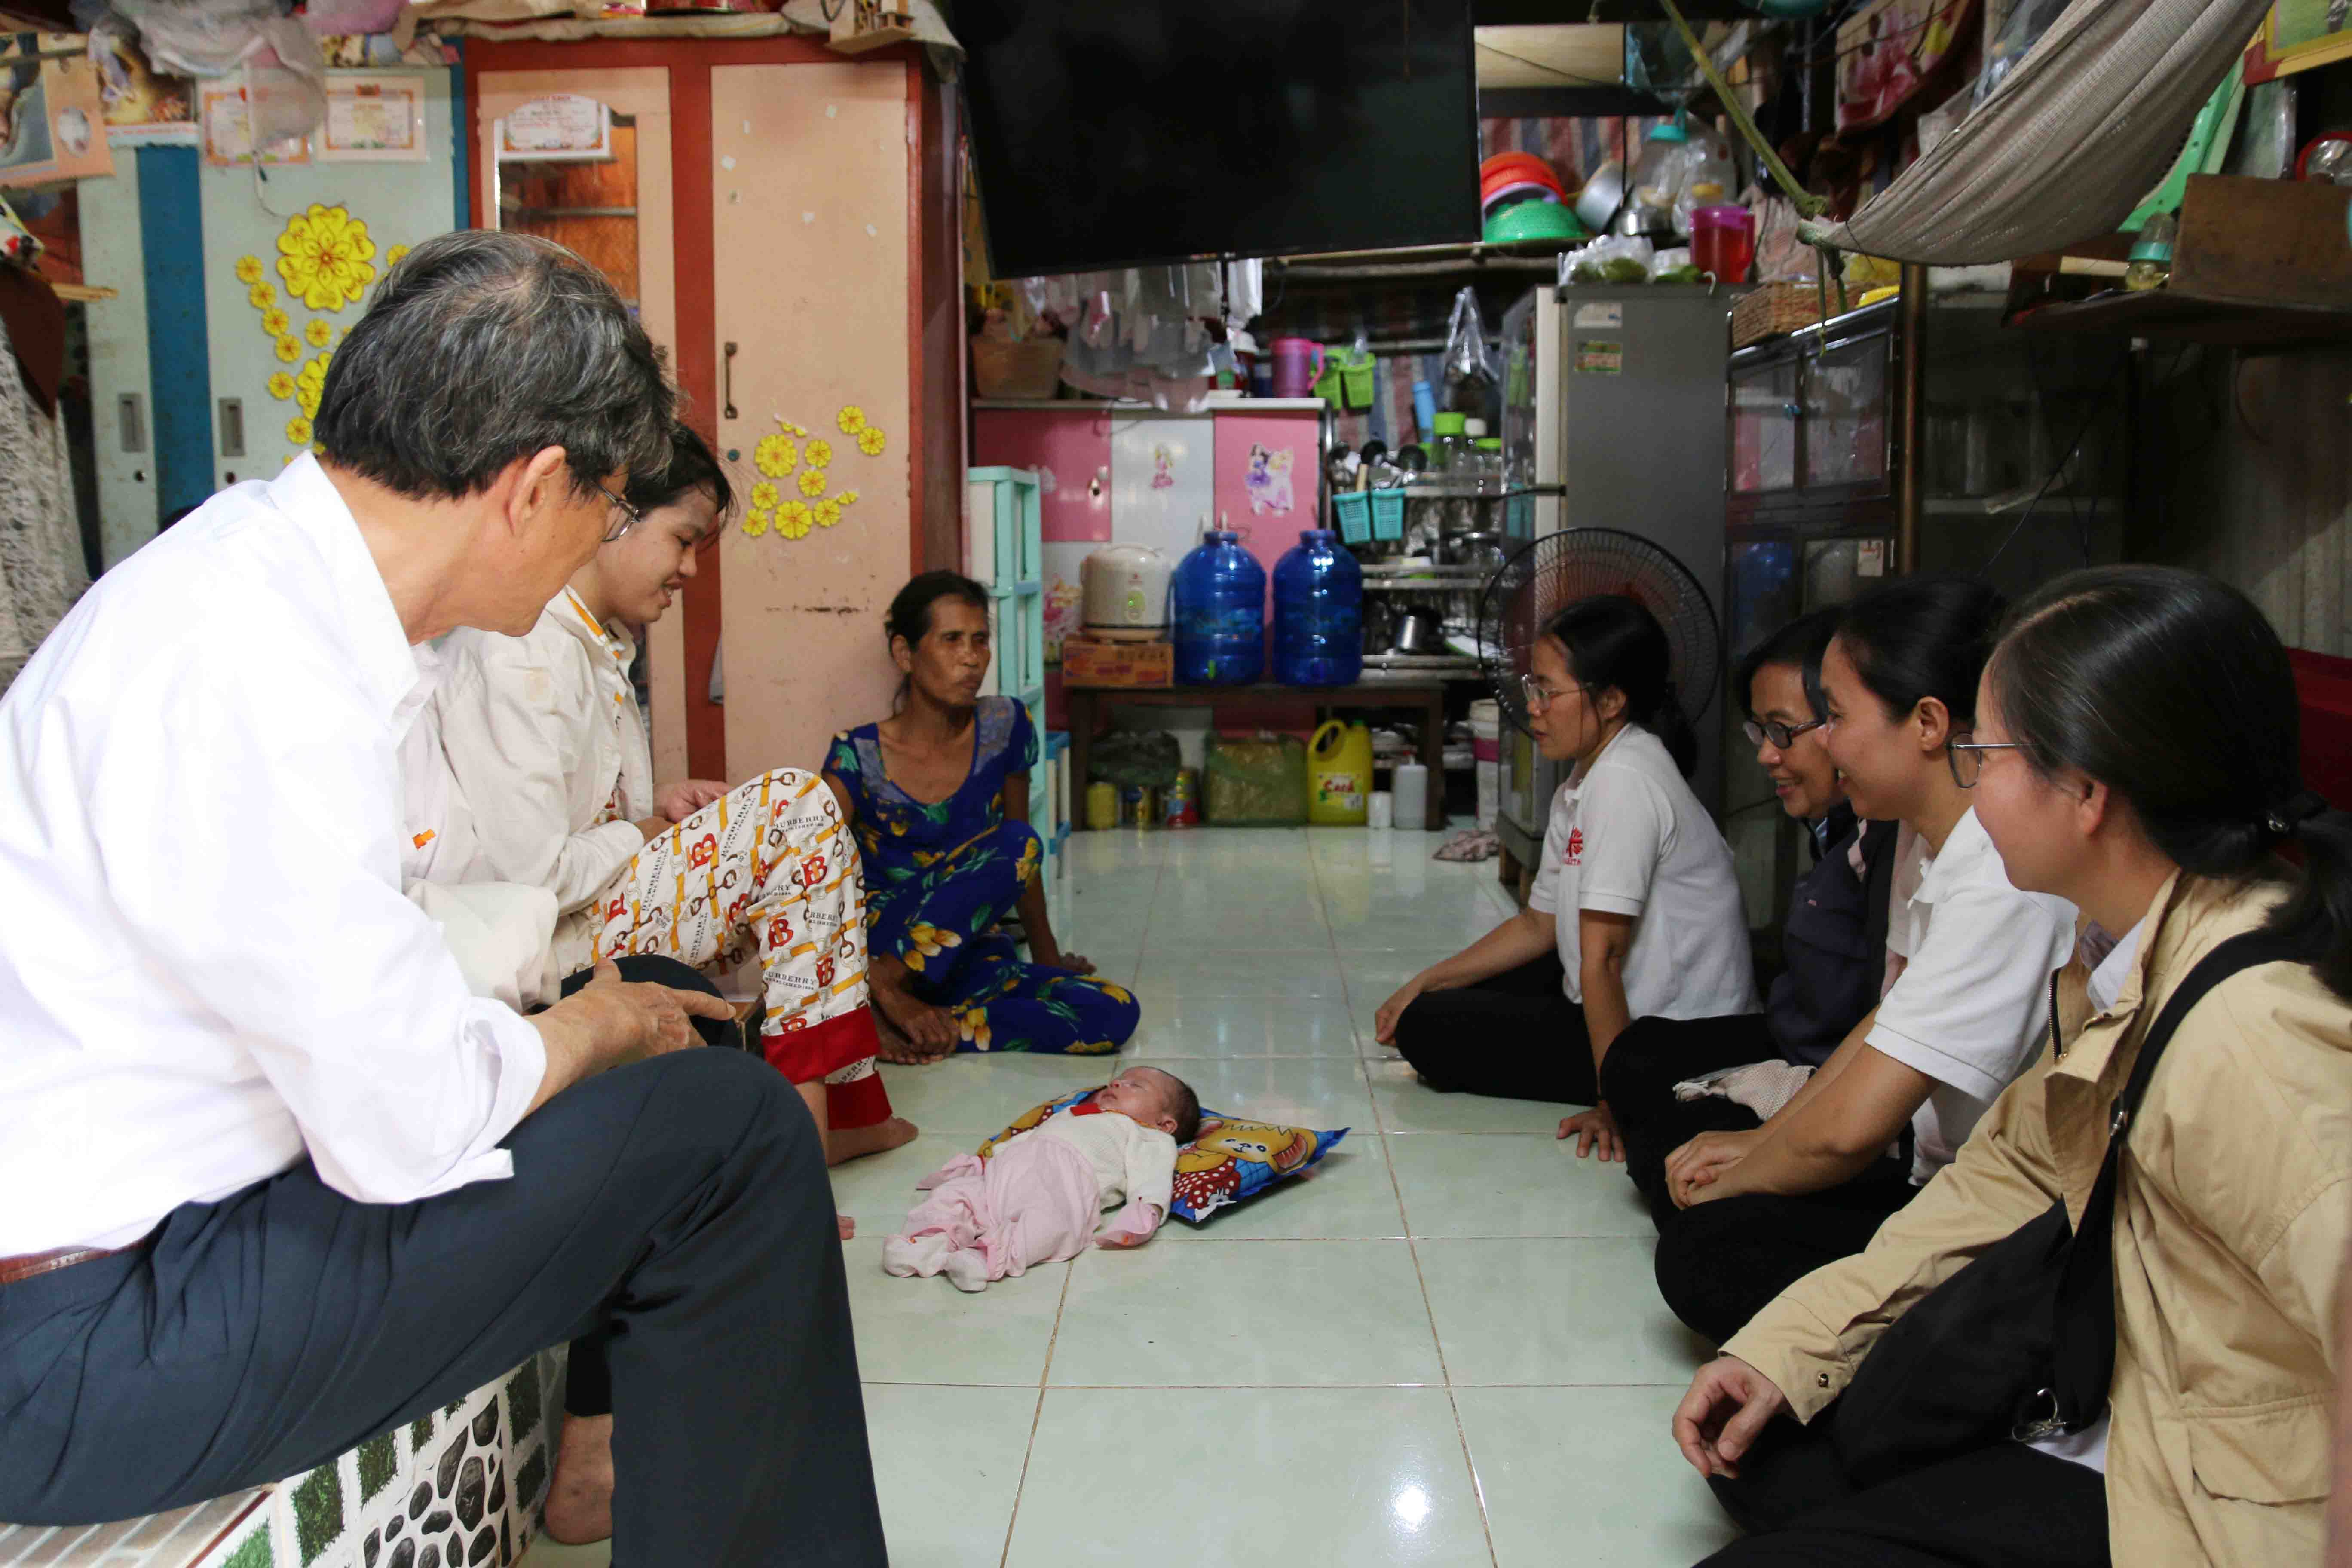 Caritas Vietnam: Visiting Families in Need on World Day of the Poor